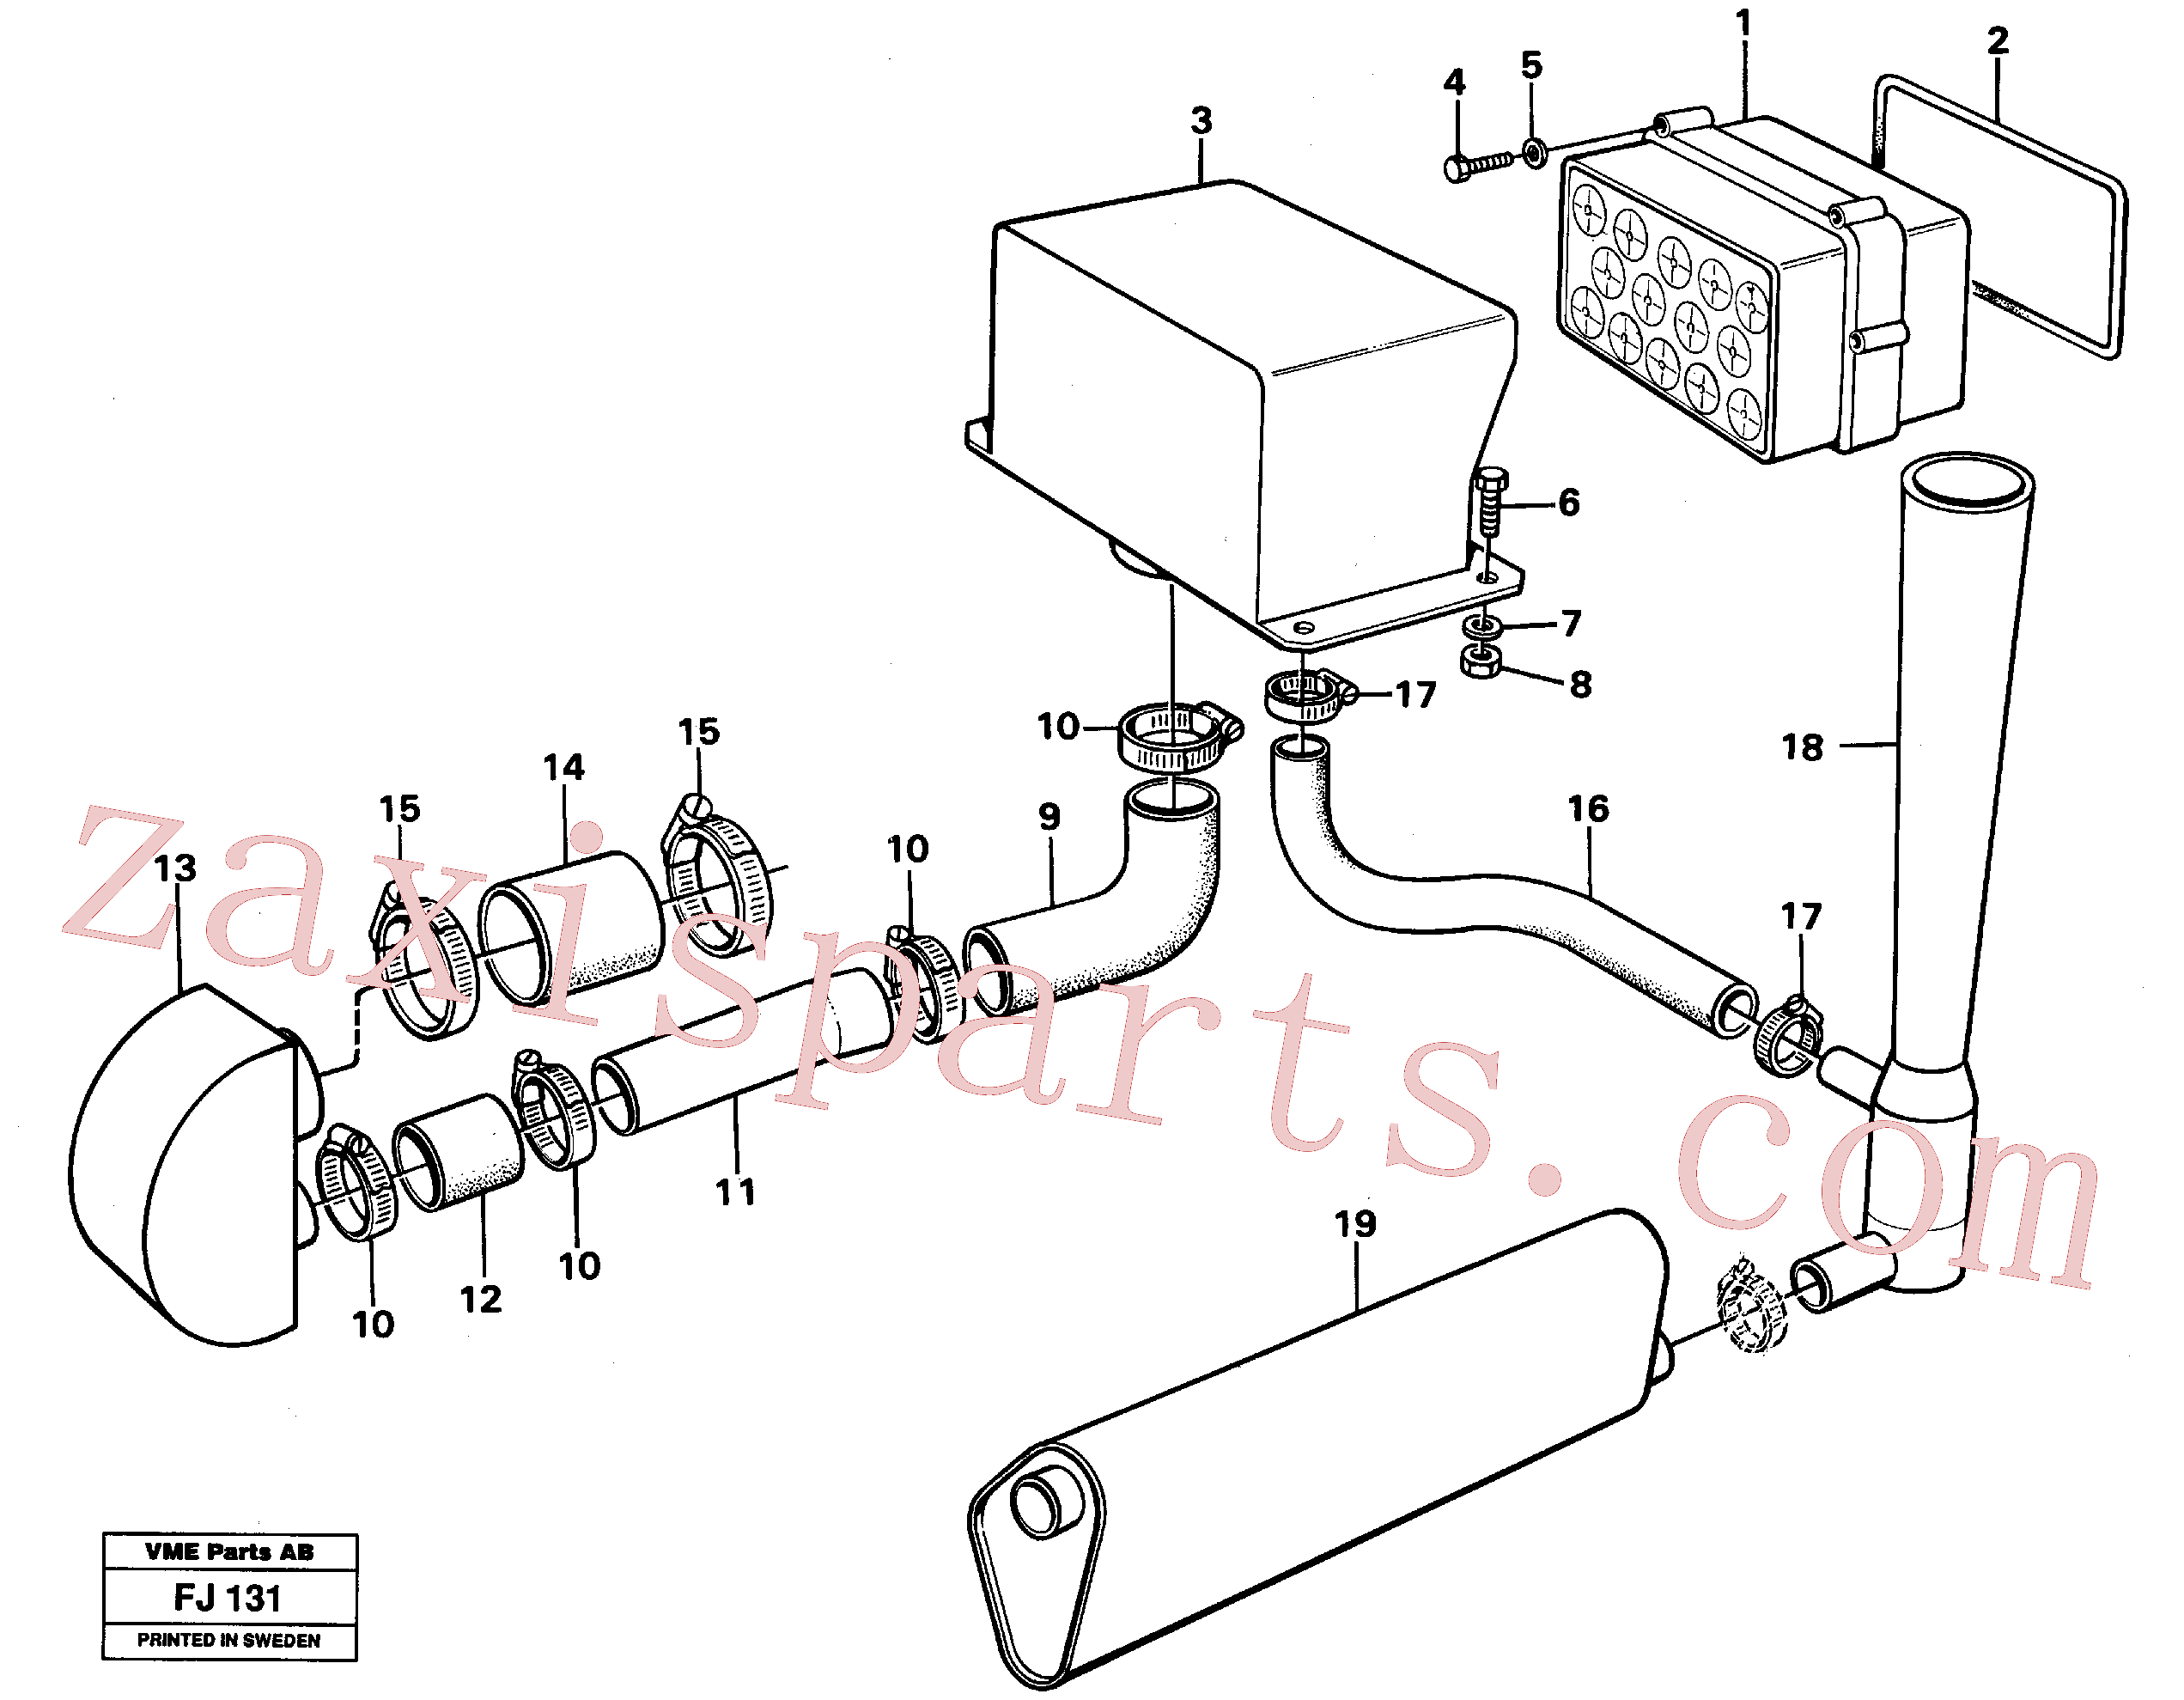 VOE14248986 for Volvo Precyclone with ejector(FJ131 assembly)